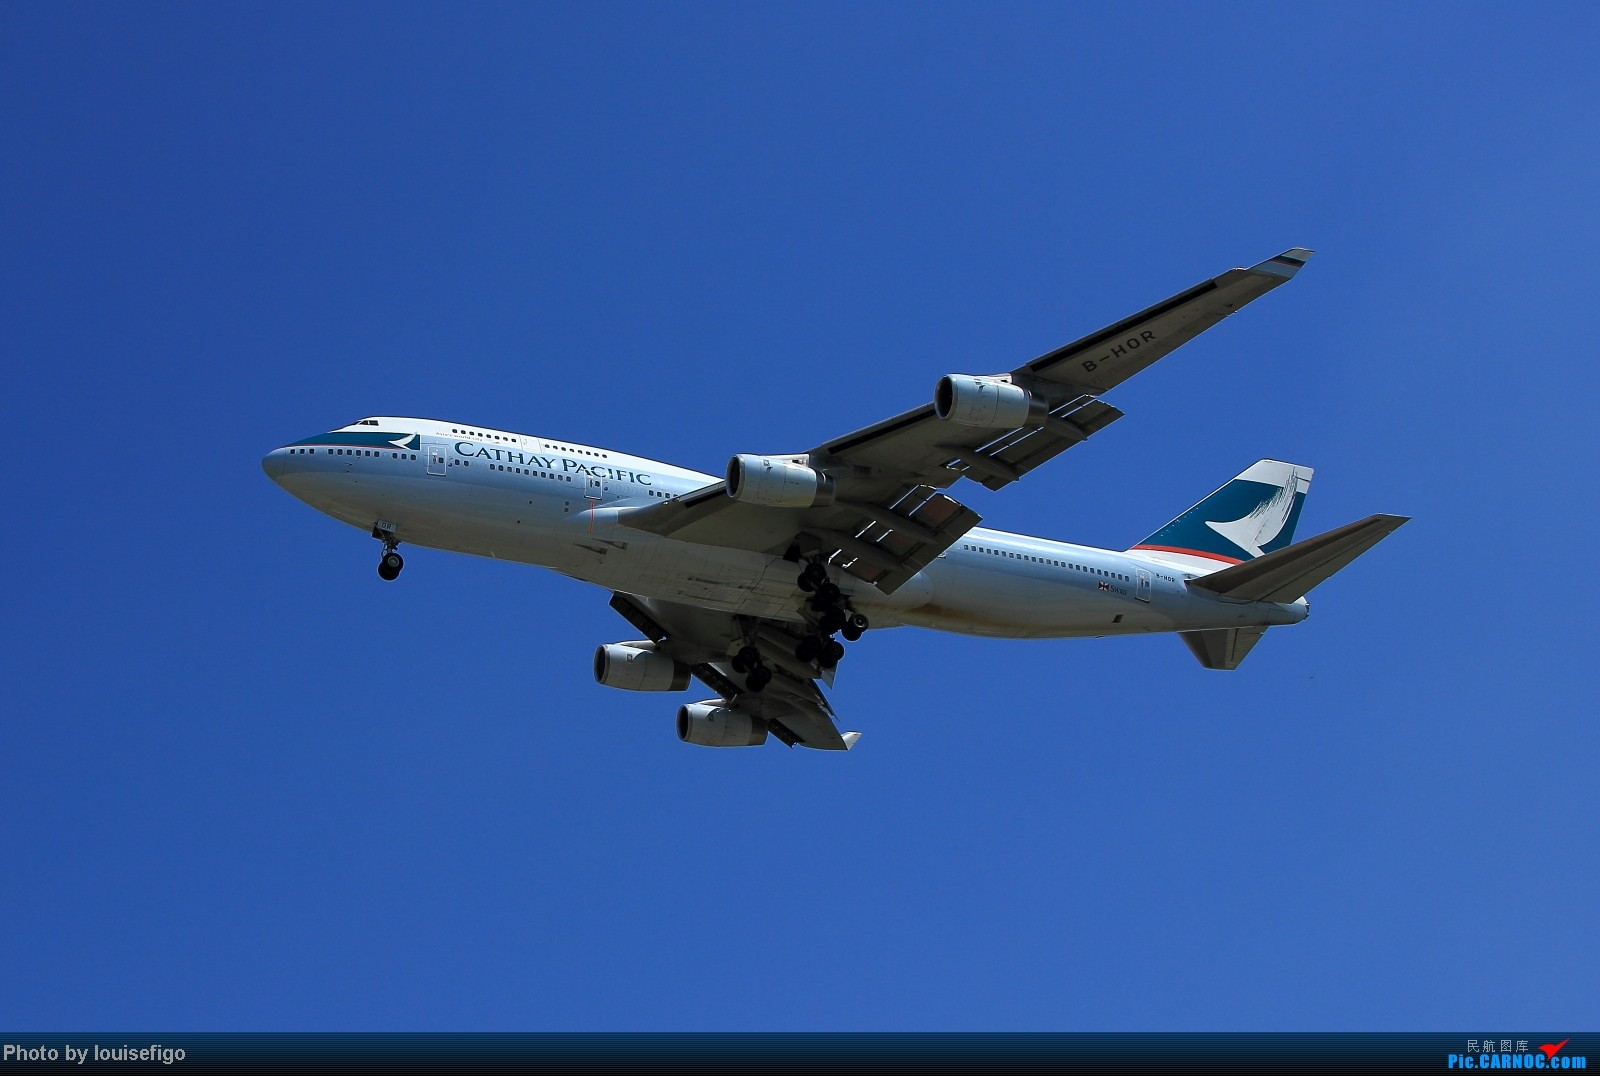 Re:[原创]Cathay Pacific BOEING 747-400 B-HOR BOEING 747-400 B-HOR 北京首都国际机场